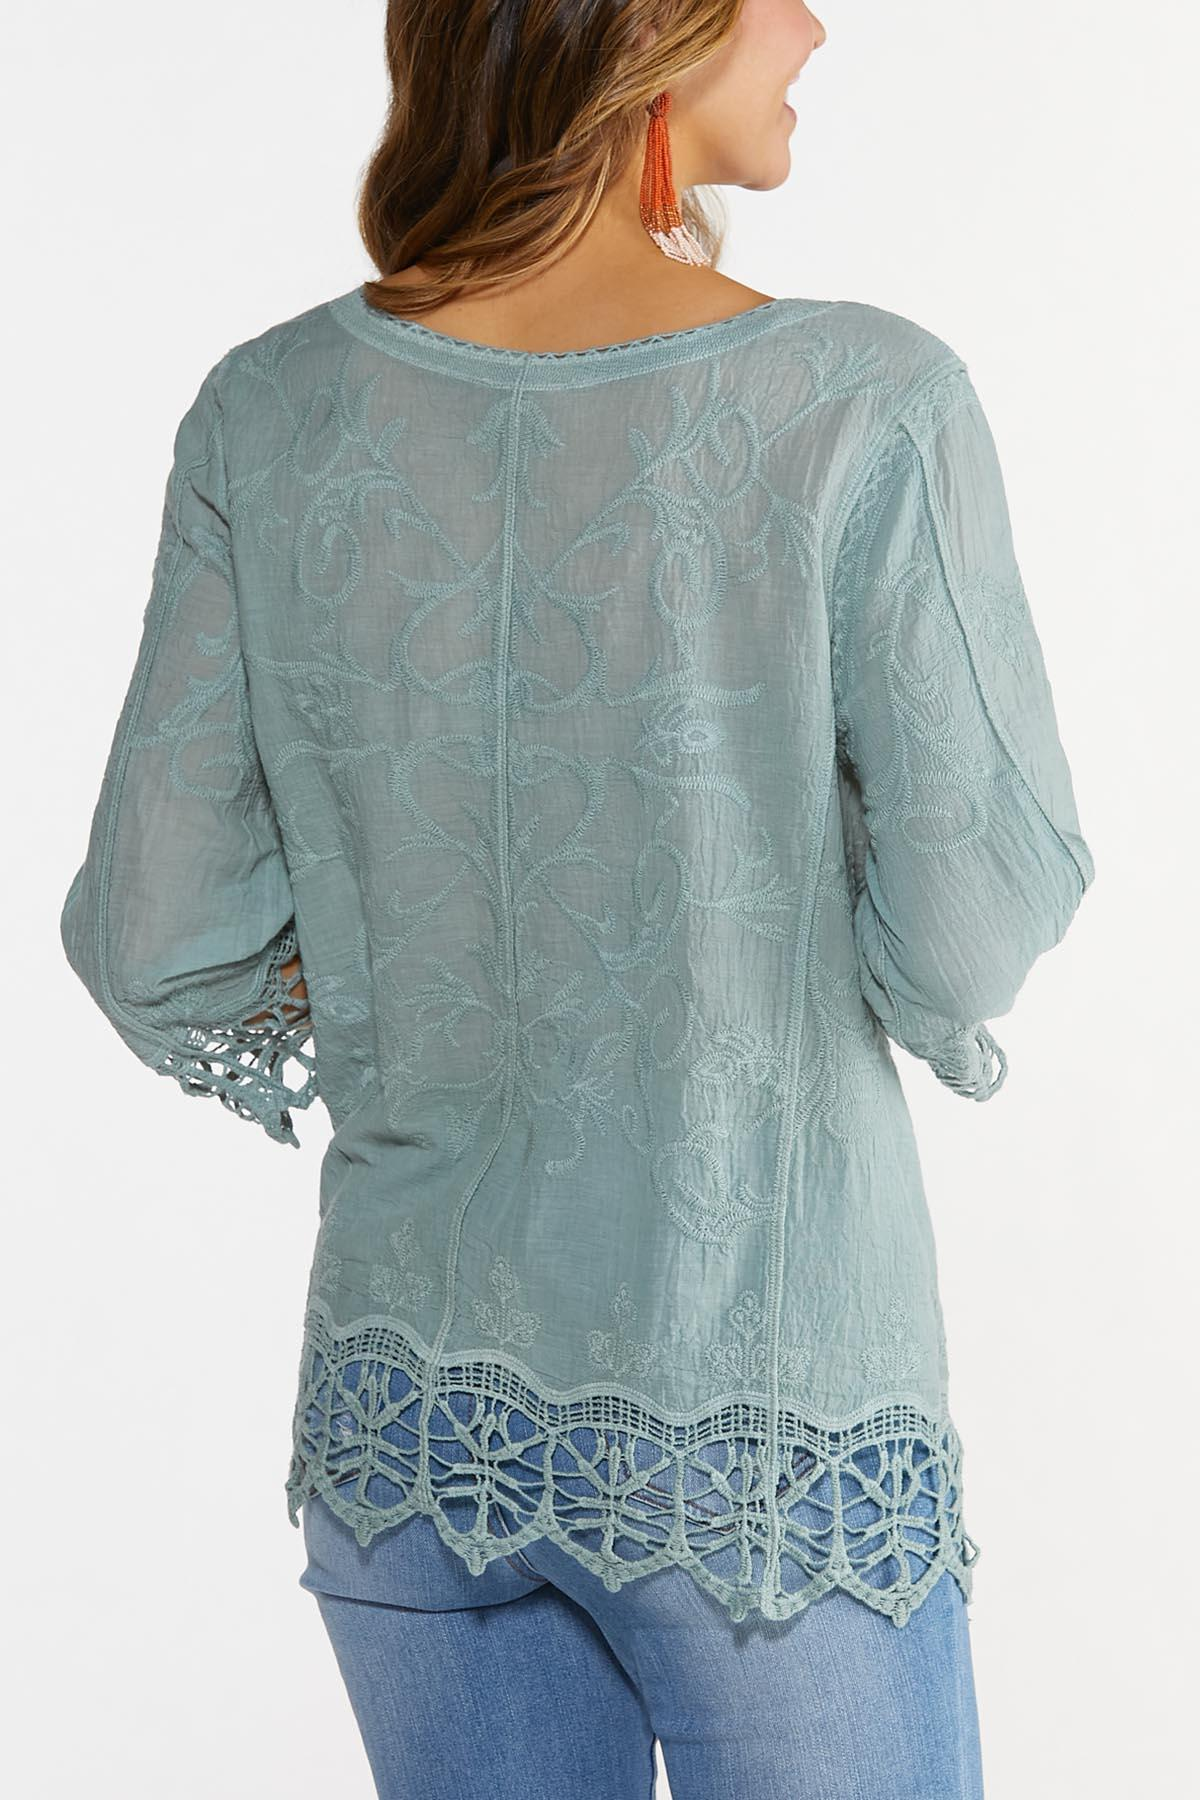 Embroidered Lace Up Top (Item #44676060)